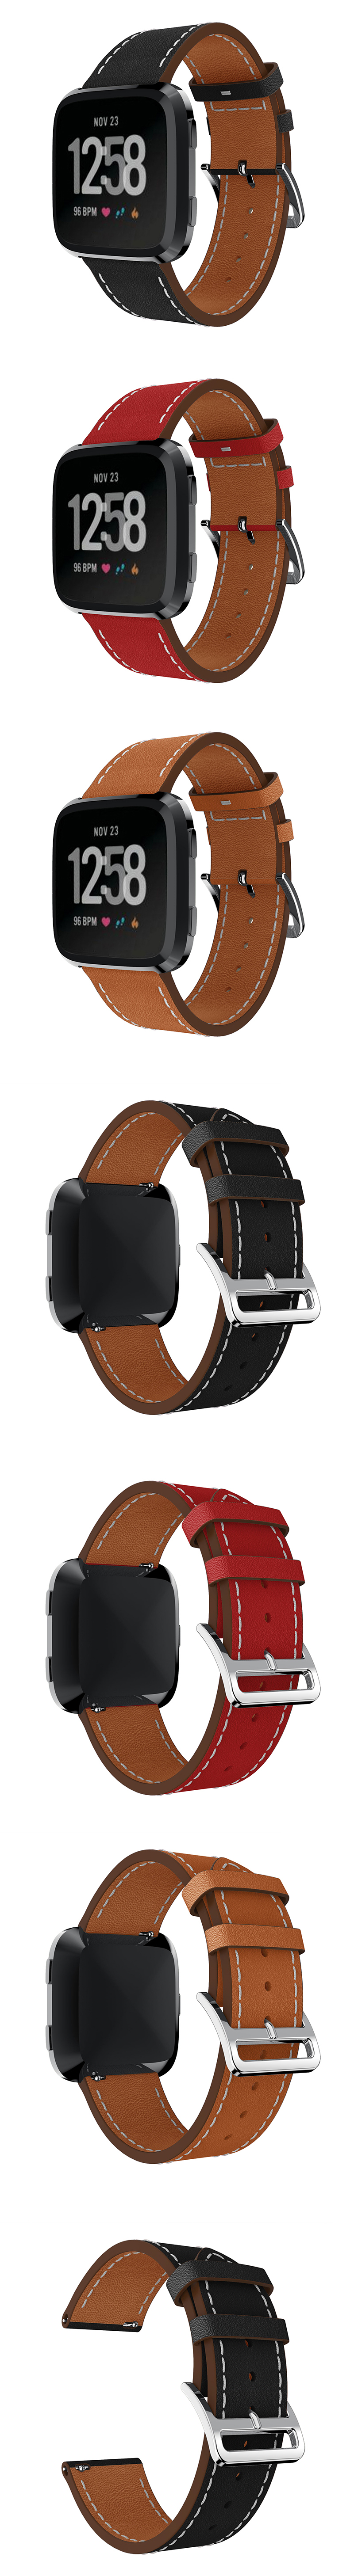 23mm Leather Watch Band Replacement For Fitbit Versa